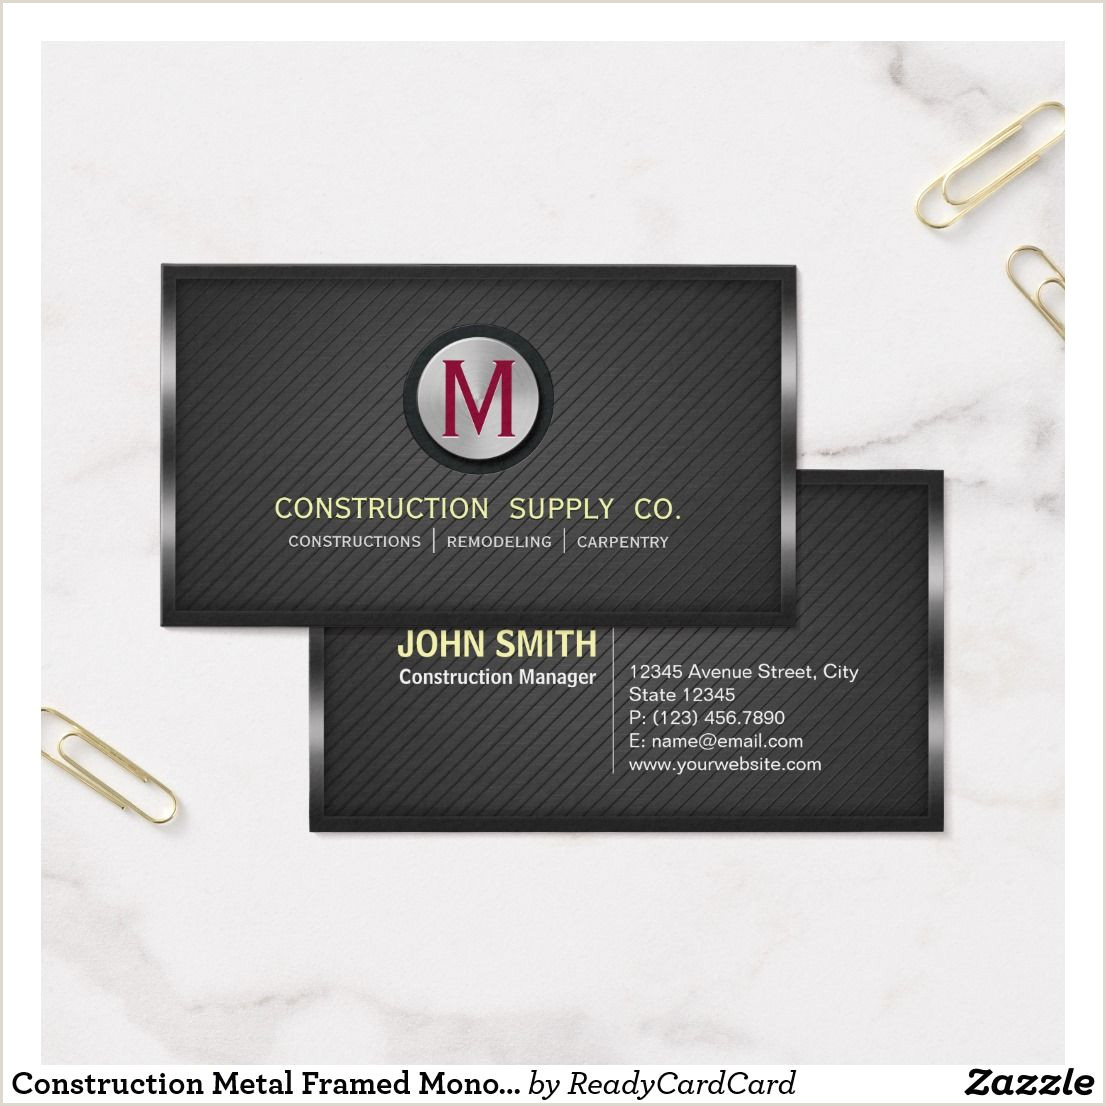 Unique Material Business Cards Construction Metal Framed Monogram Twill Material Business